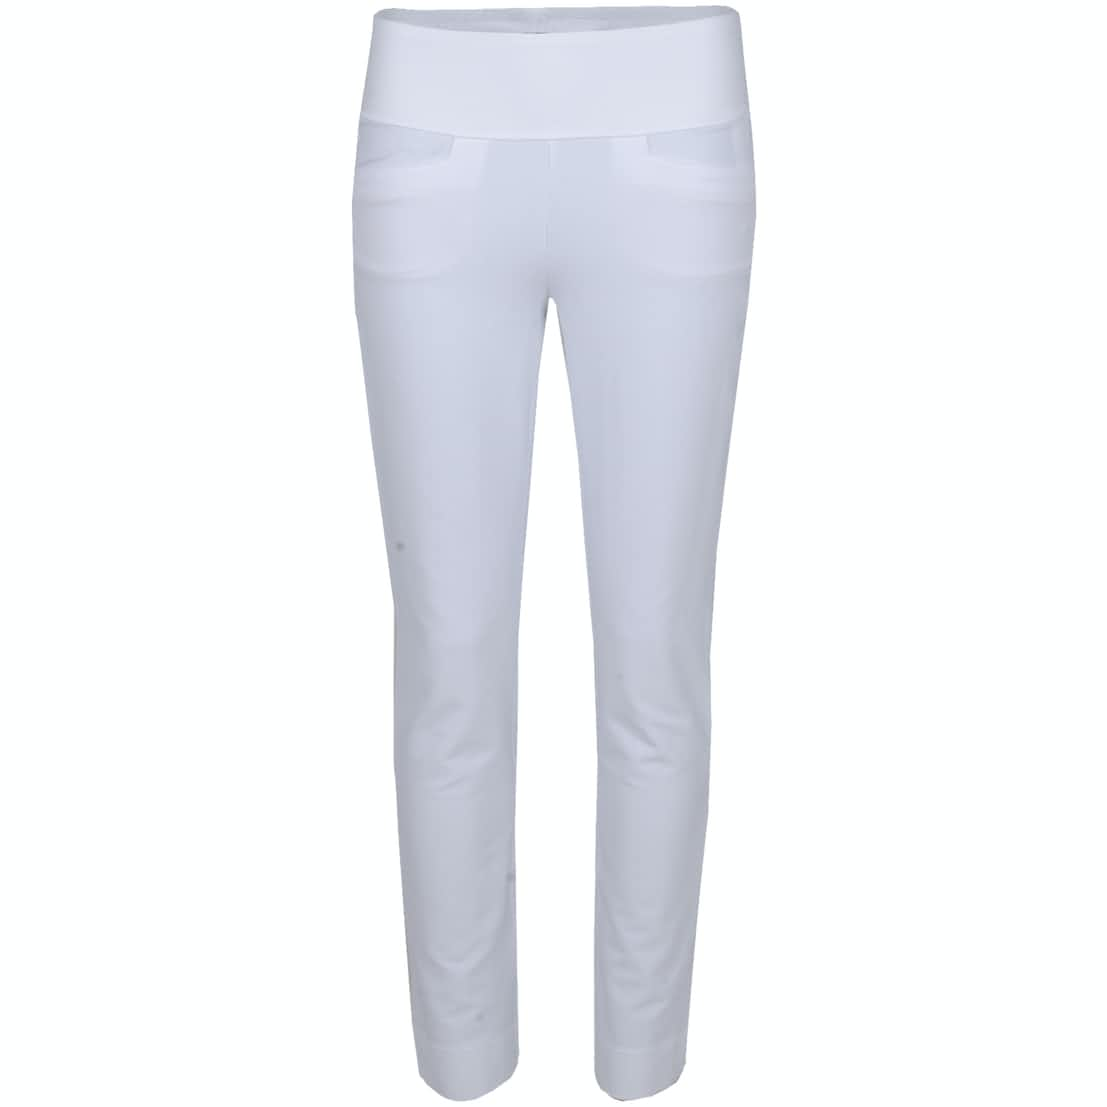 Womens PWRSHAPE Pull On Pants Bright White - 2020